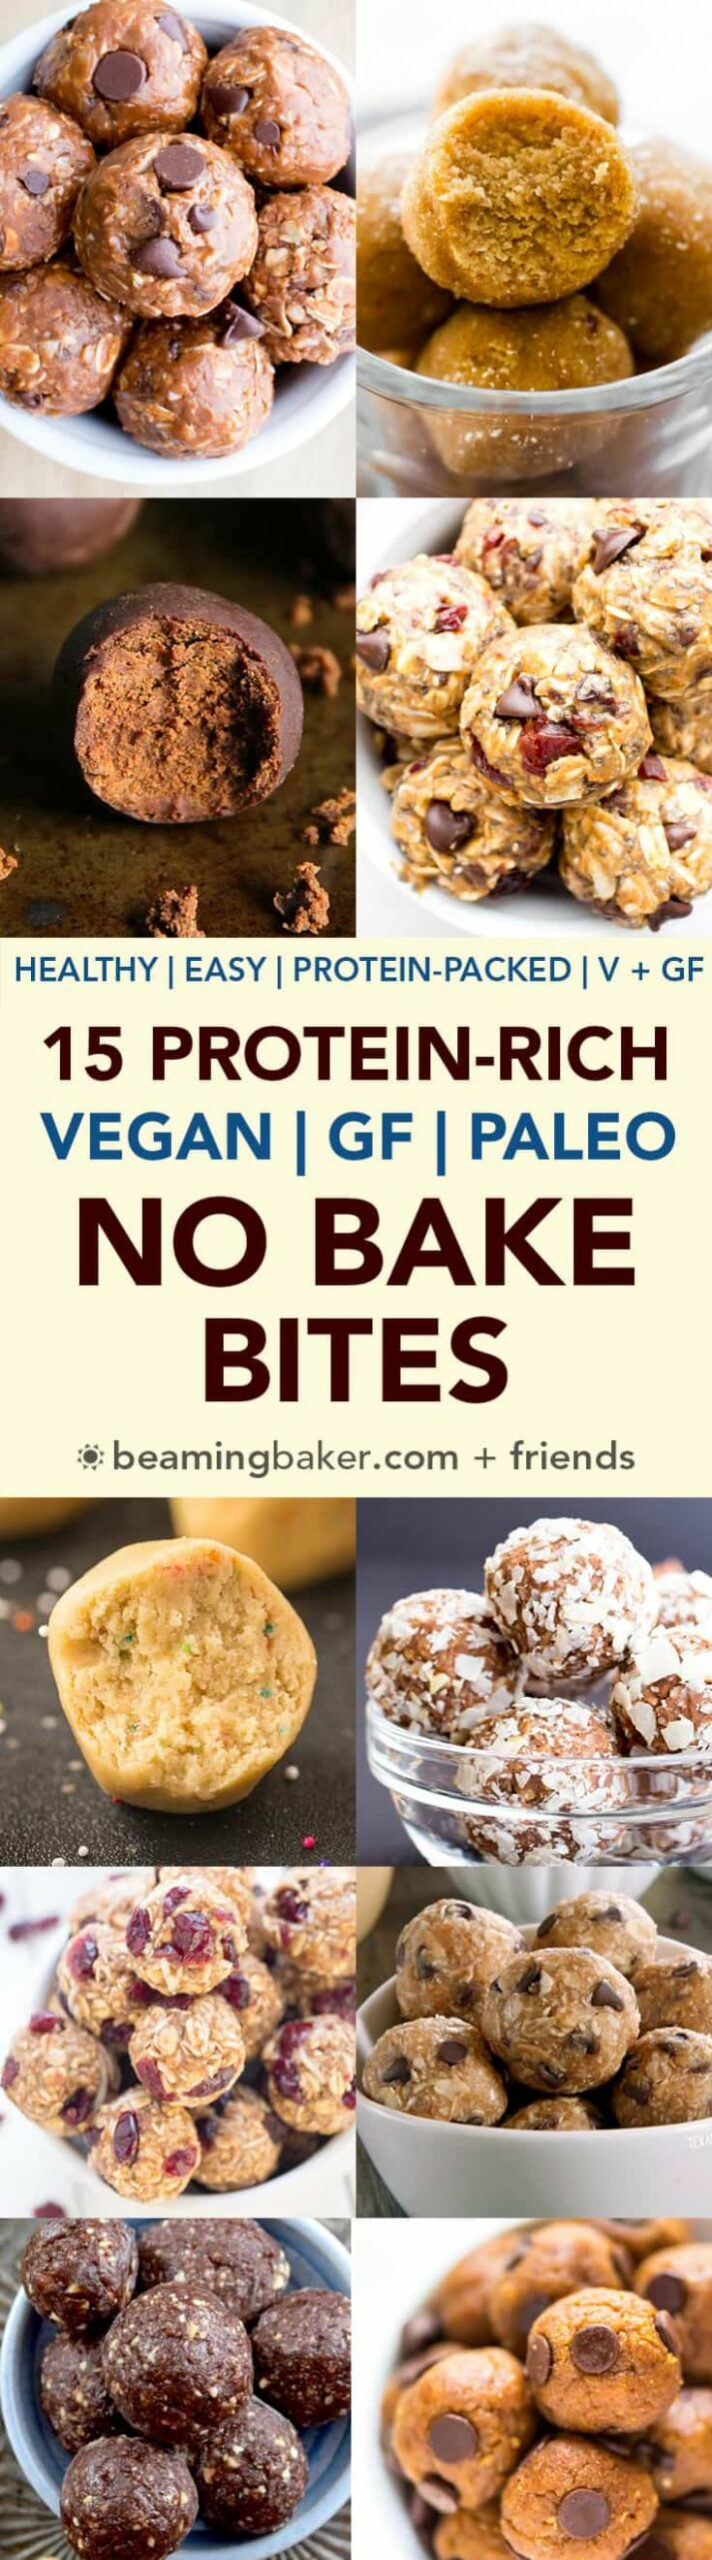 10 Healthy Protein-Packed No Bake Energy Bite Recipes (Gluten Free ..